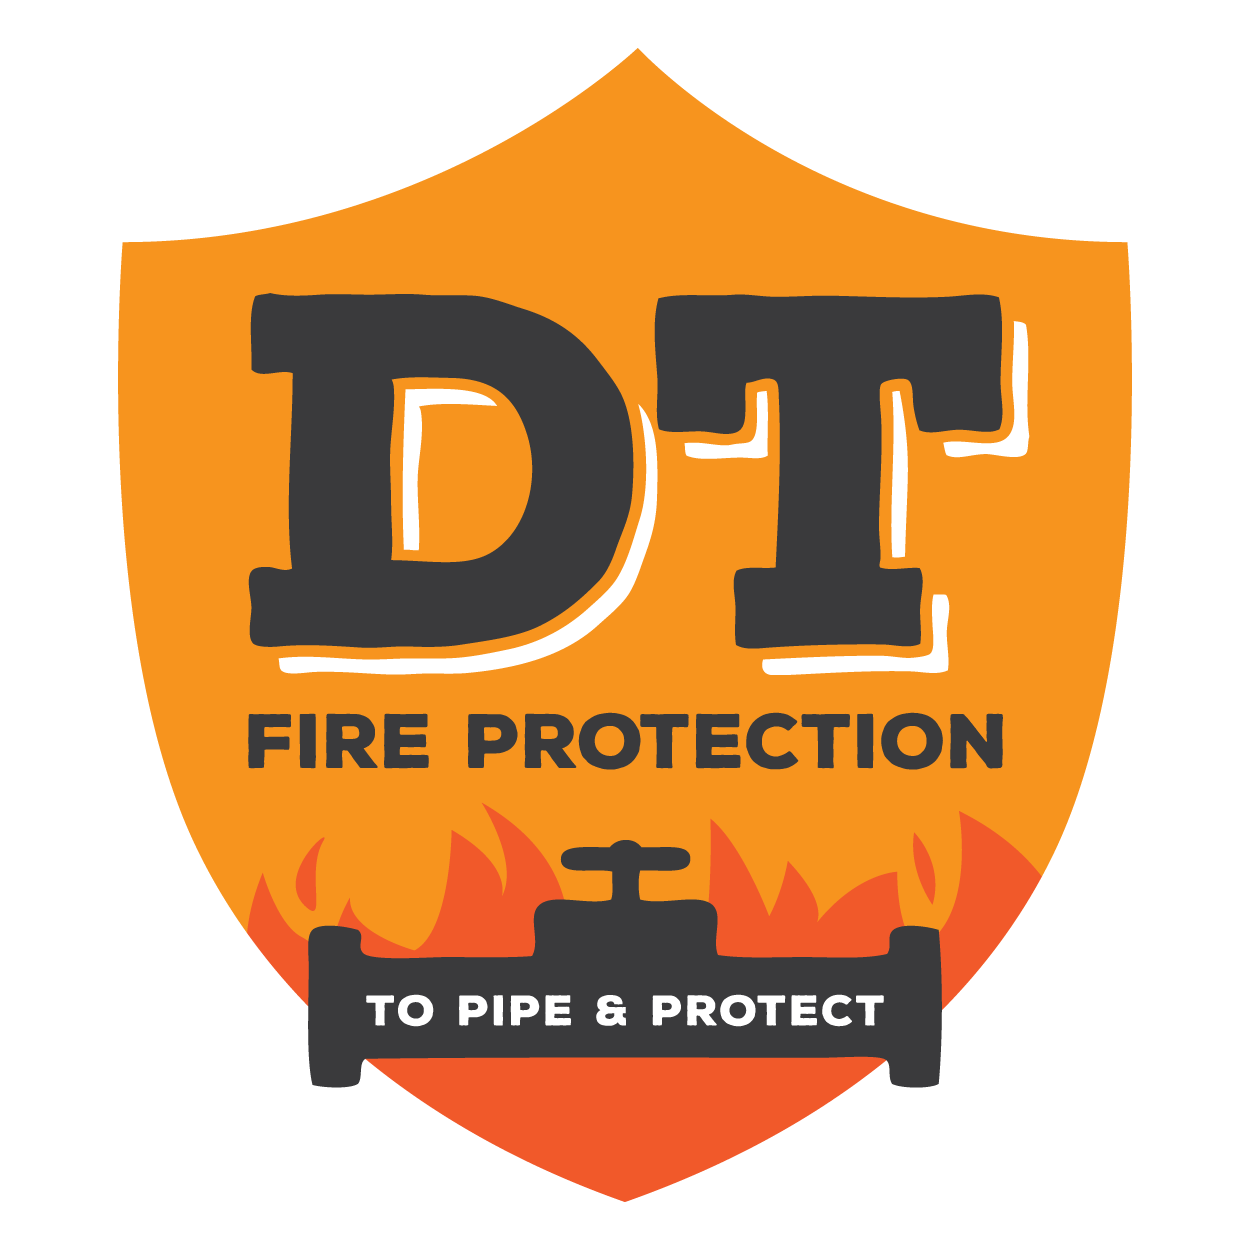 DT Fire Protection